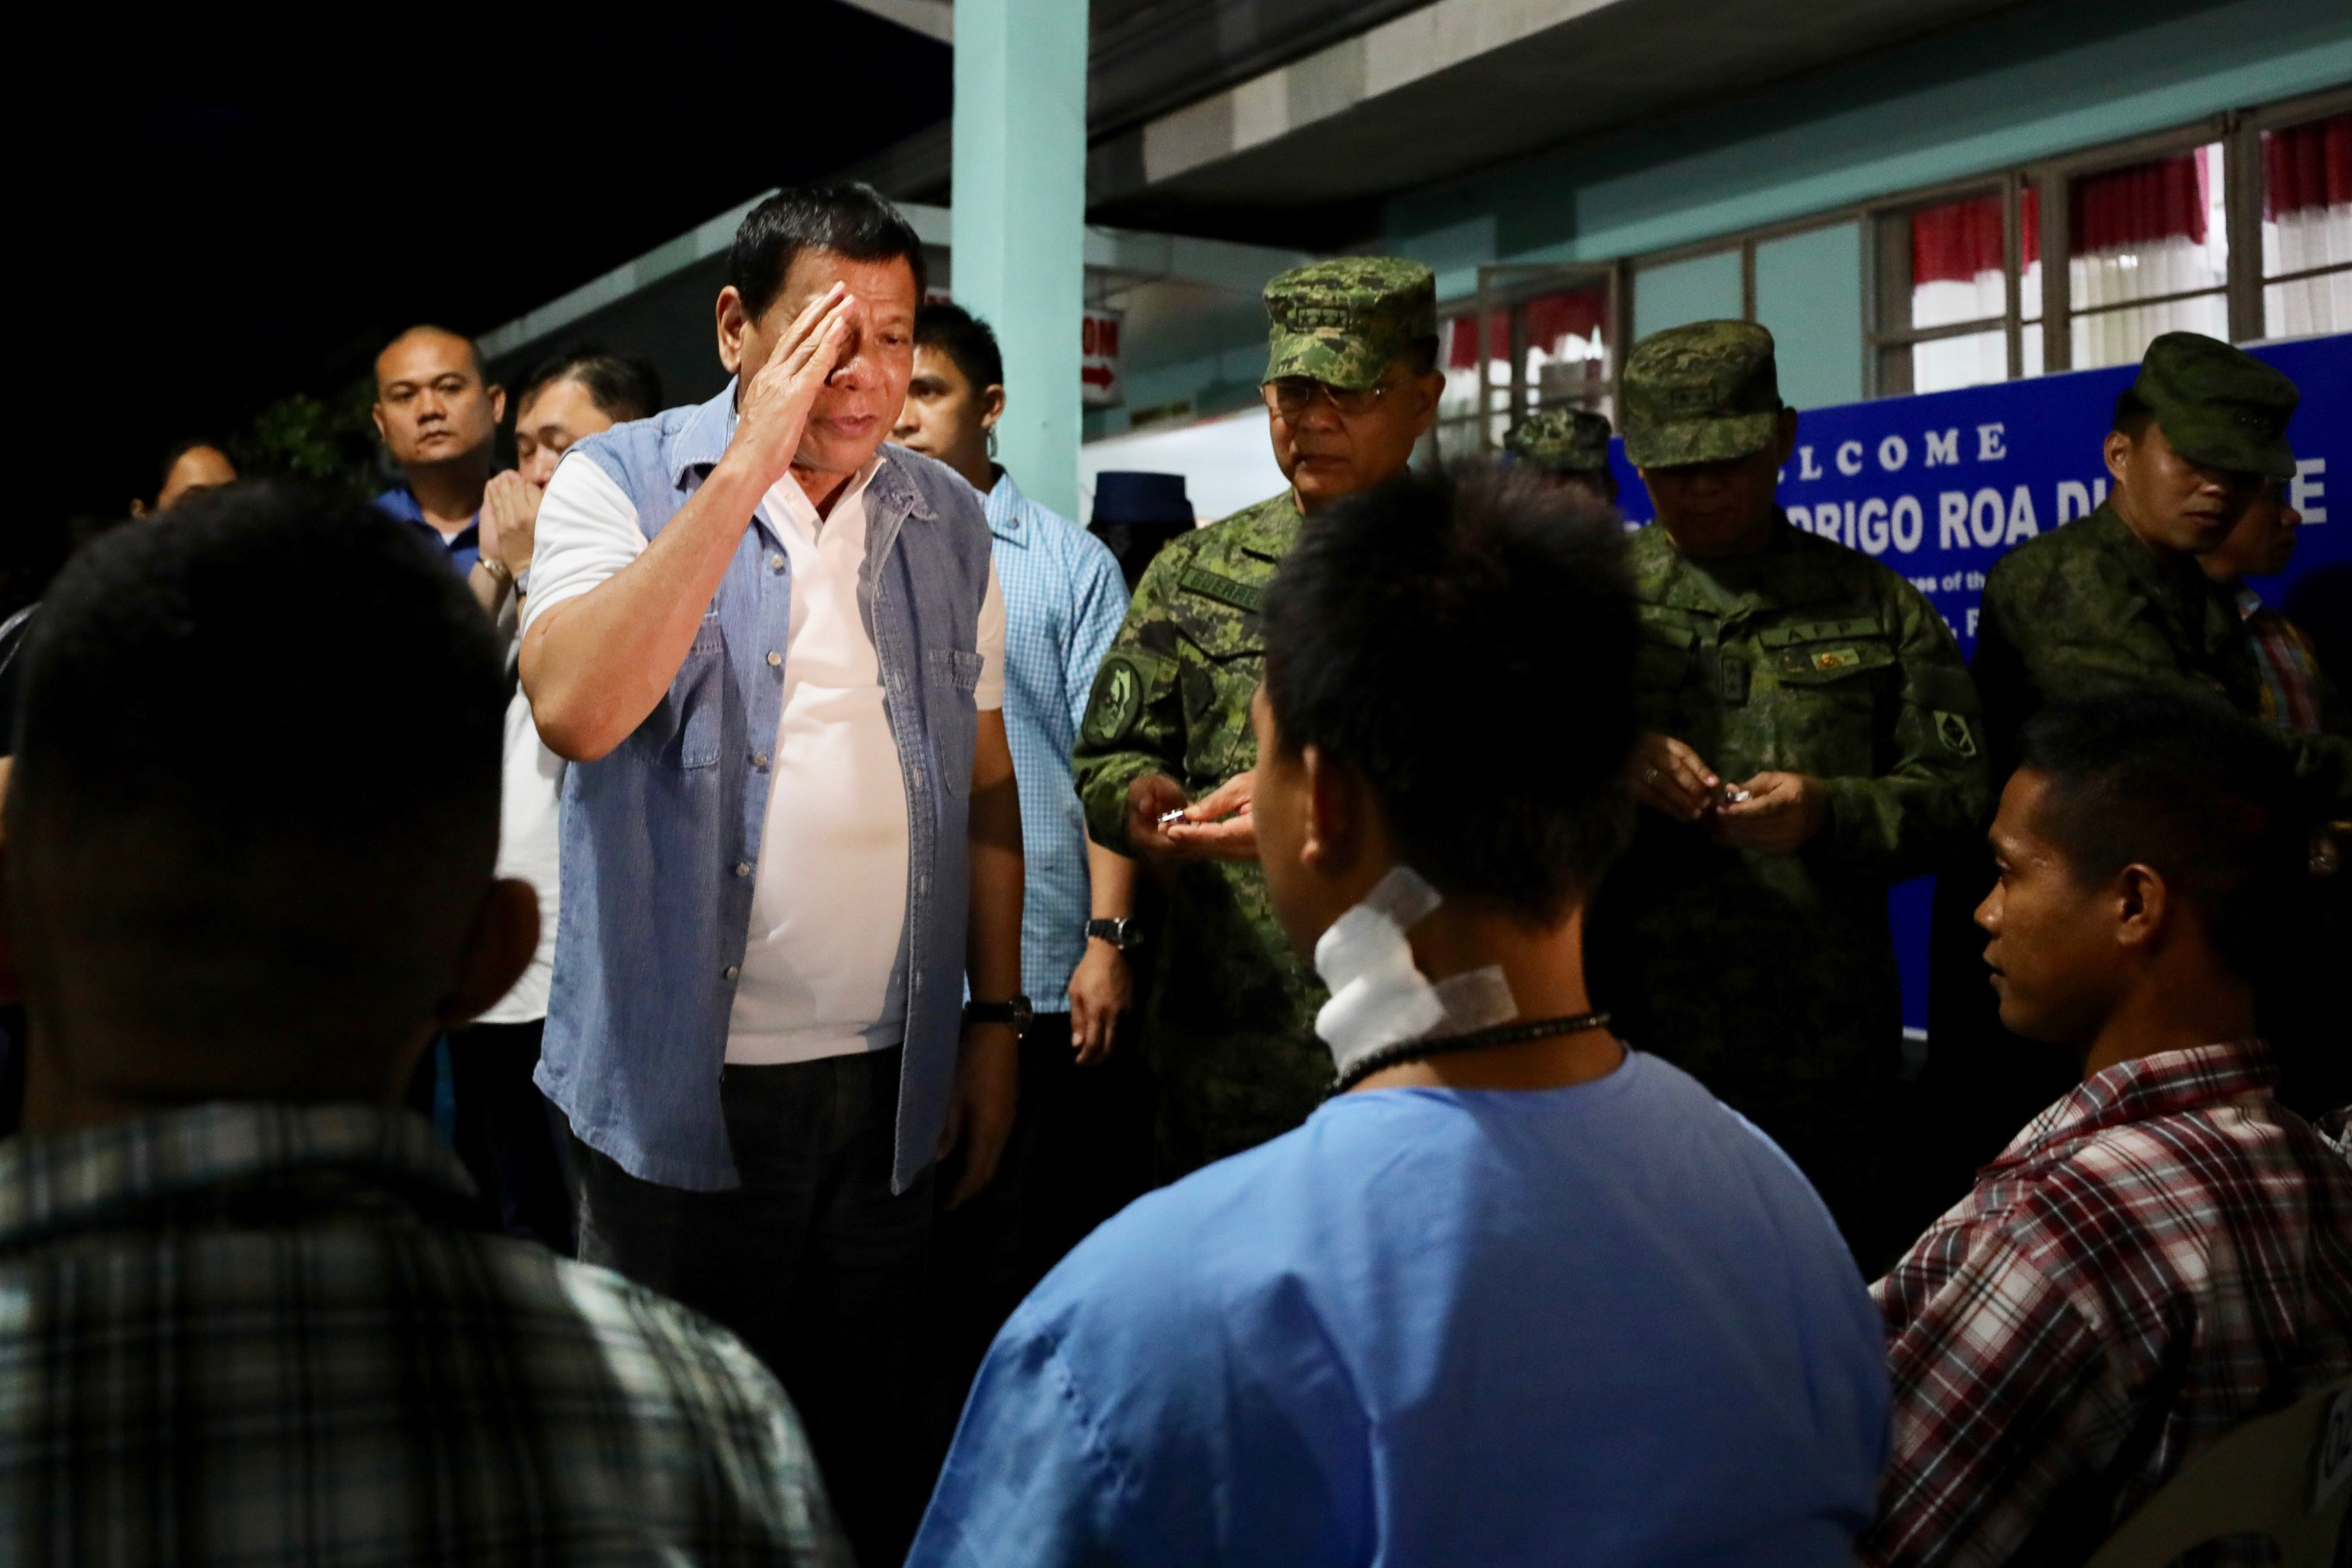 BACK IN ACTION. After almost a week without public activities, President Rodrigo Duterte visits wounded soldiers at Camp Edilberto Evangelista Station Hospital in Cagayan de Oro City. Malacau00f1ang photo